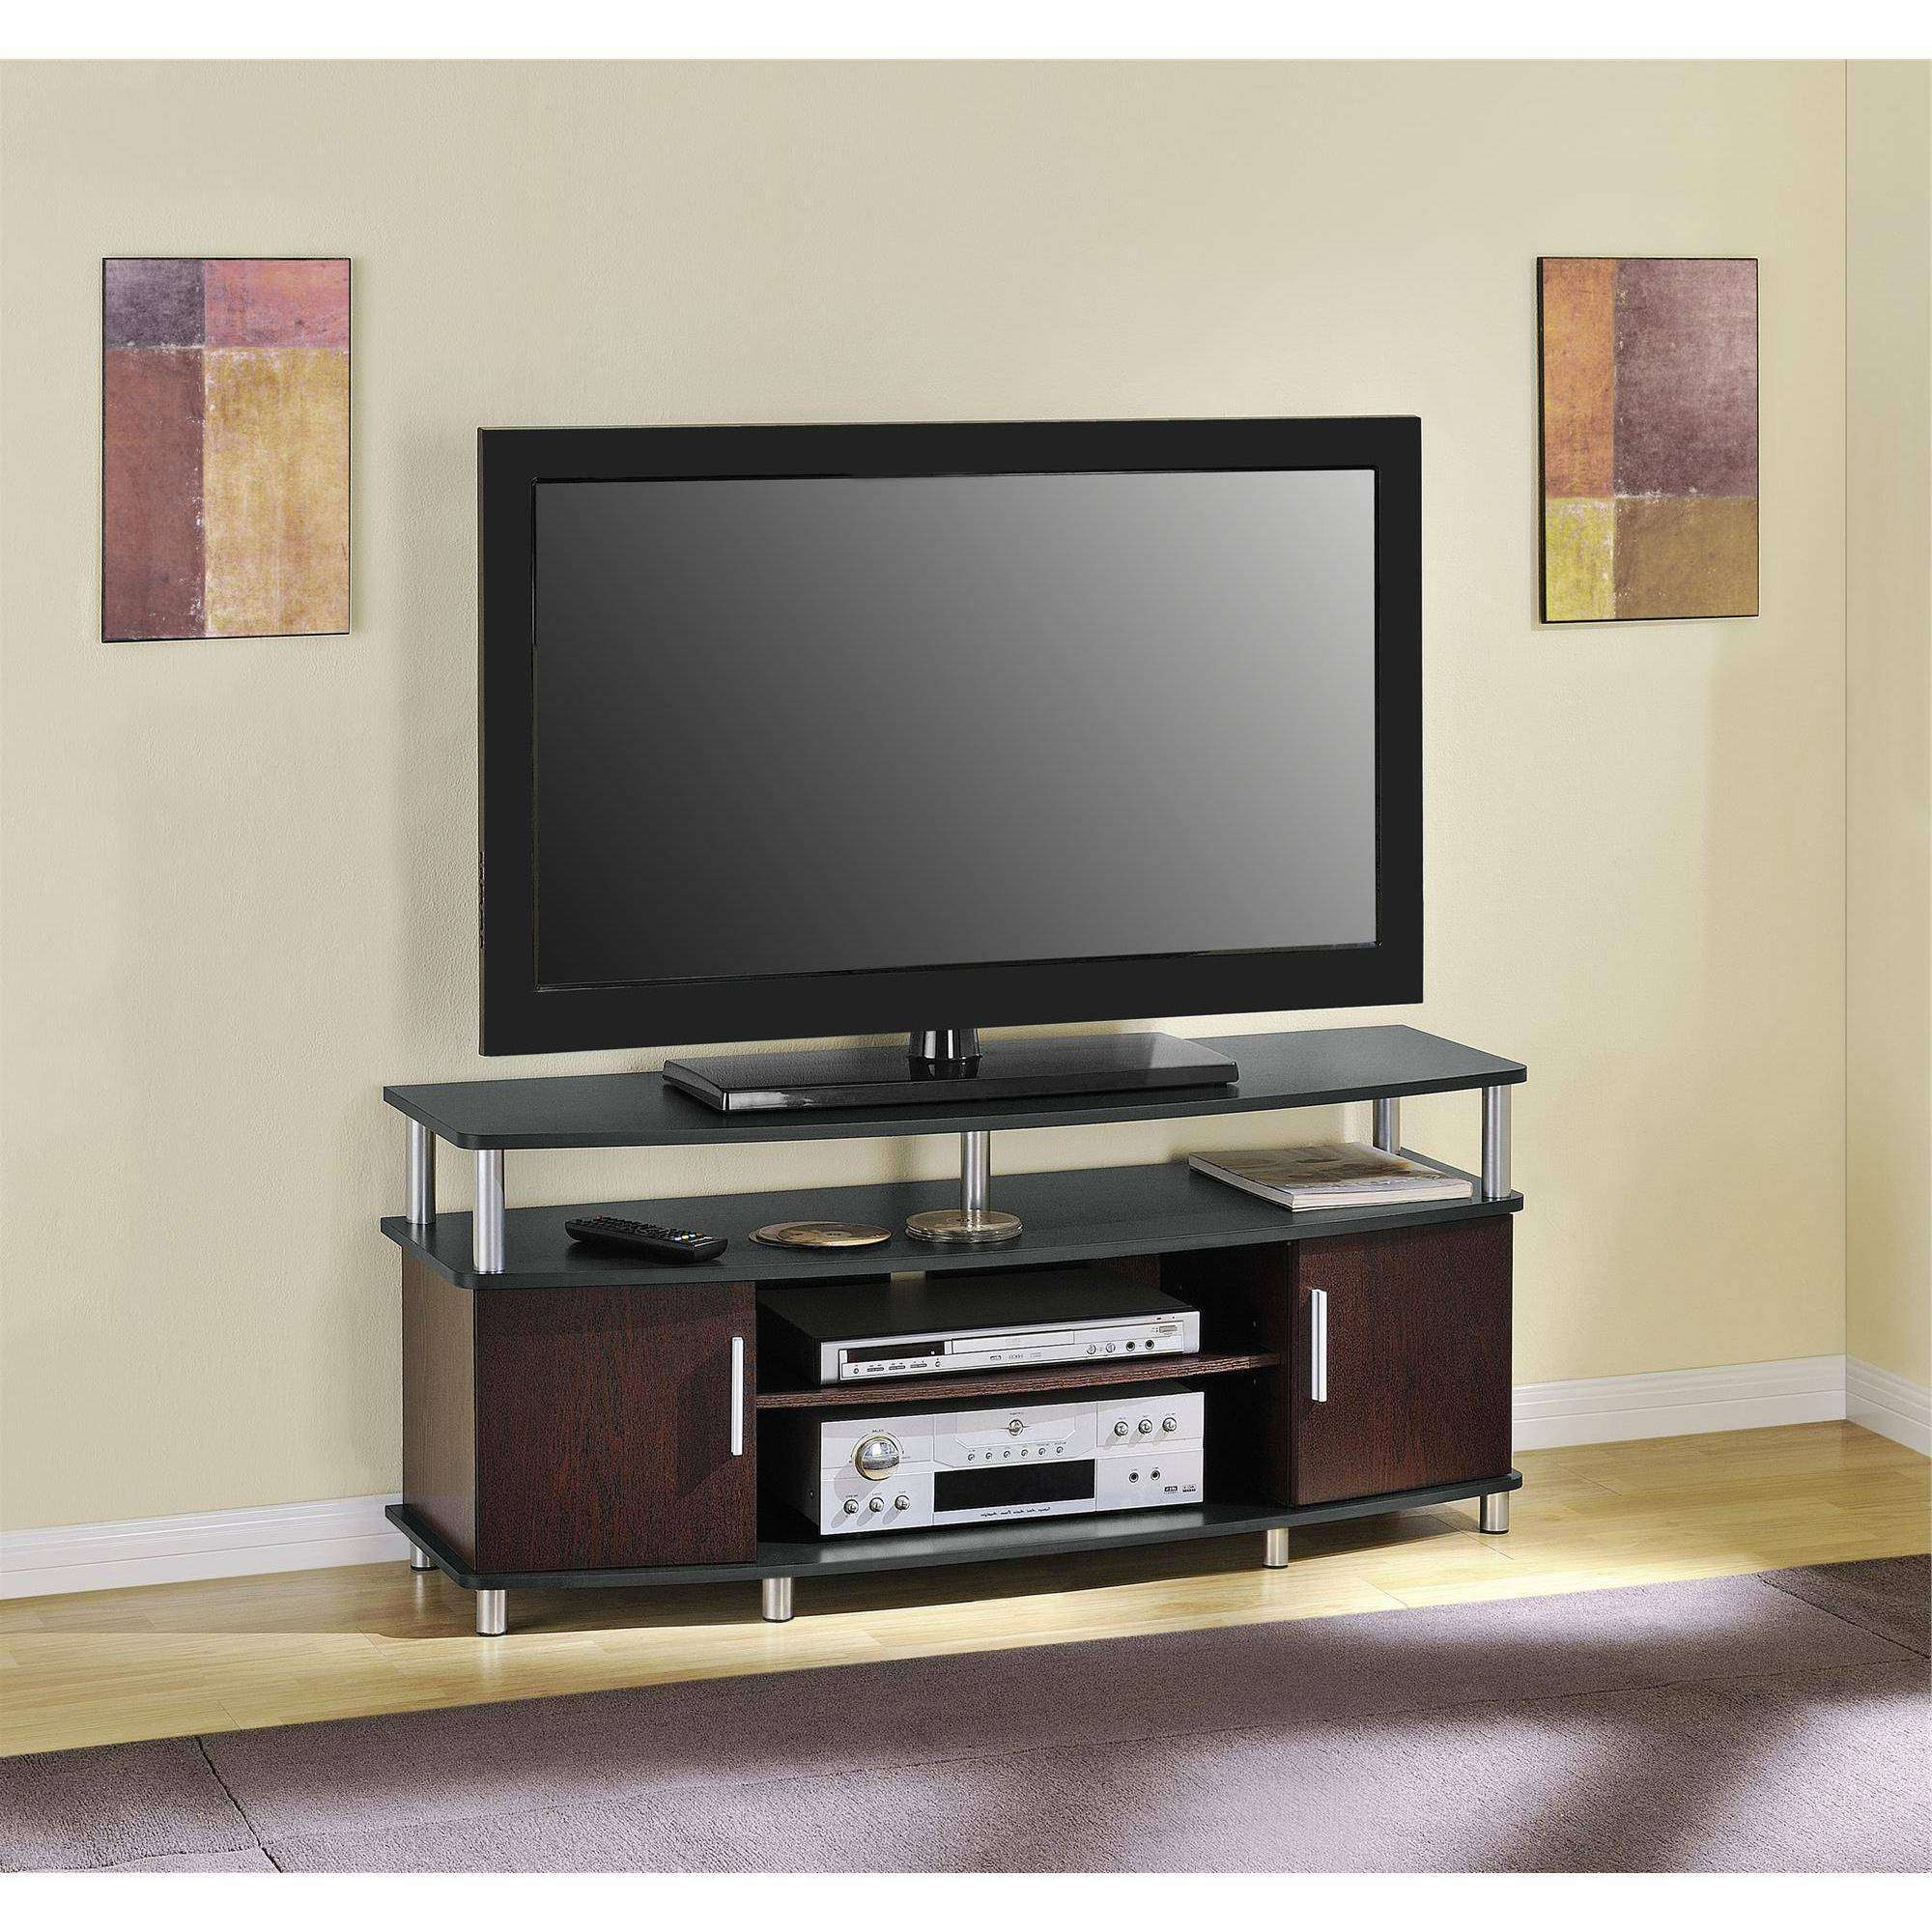 Tv : Corner Tv Stands Top 10 Best Rated Corner Tv Cabinets For Light Oak Tv Stands Flat Screen (View 11 of 15)